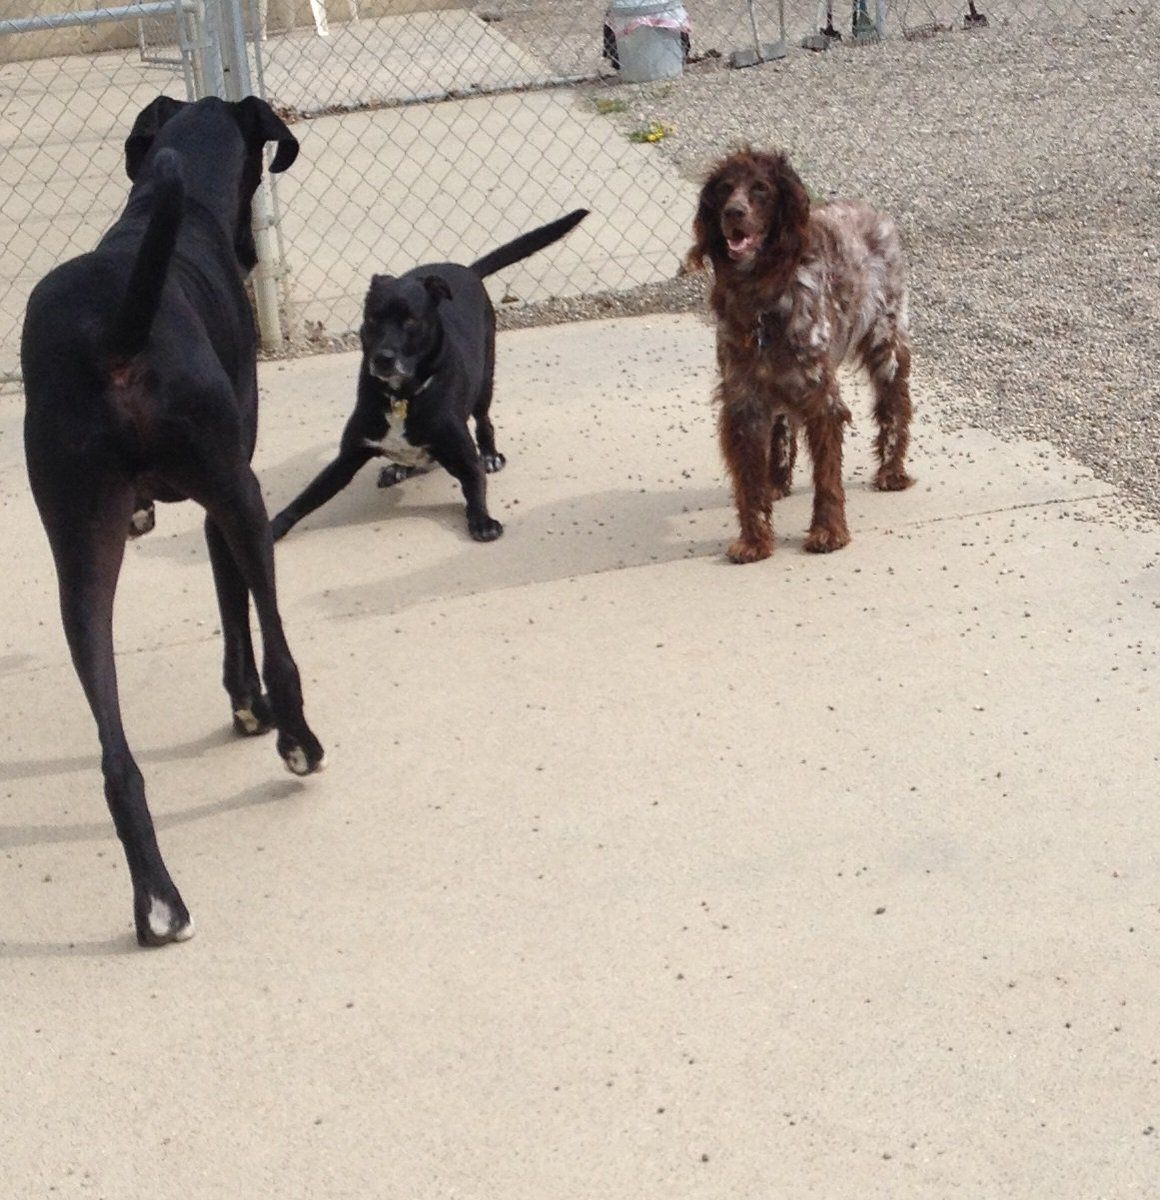 Zoey and Nelly ask Zeus to play!